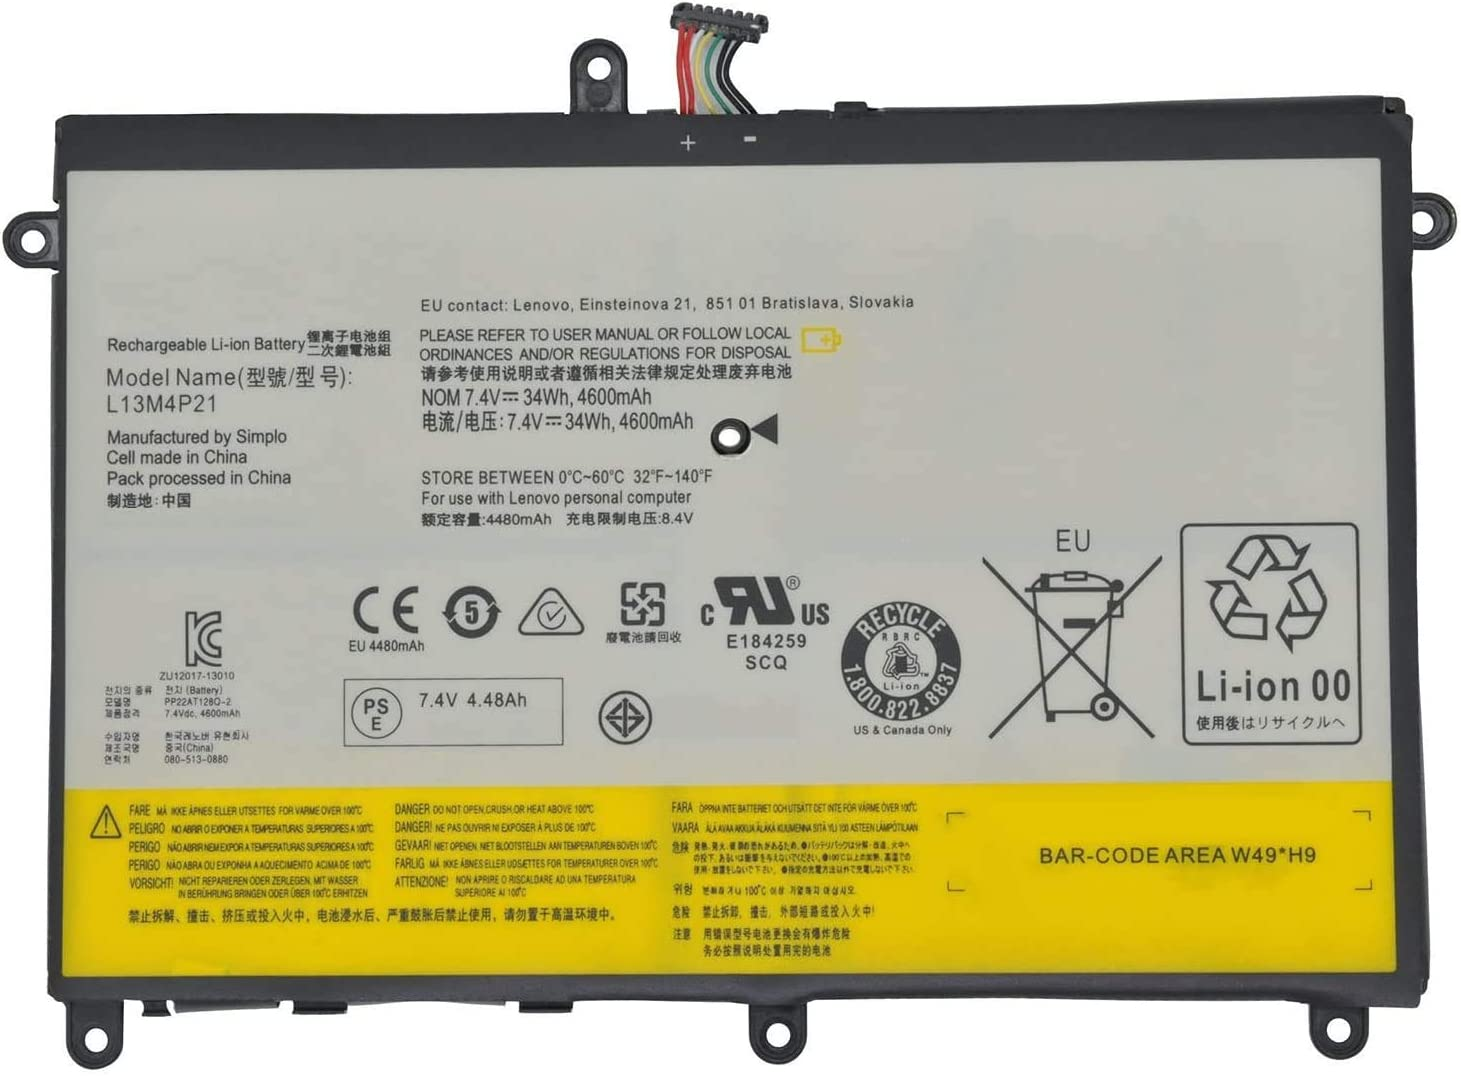 Fully New L13M4P21 L13L4P21 Replacement Laptop Battery Compatible with Lenovo IdeaPad Yoga 2 11 121500223-7.4V 34Wh/4600mAh